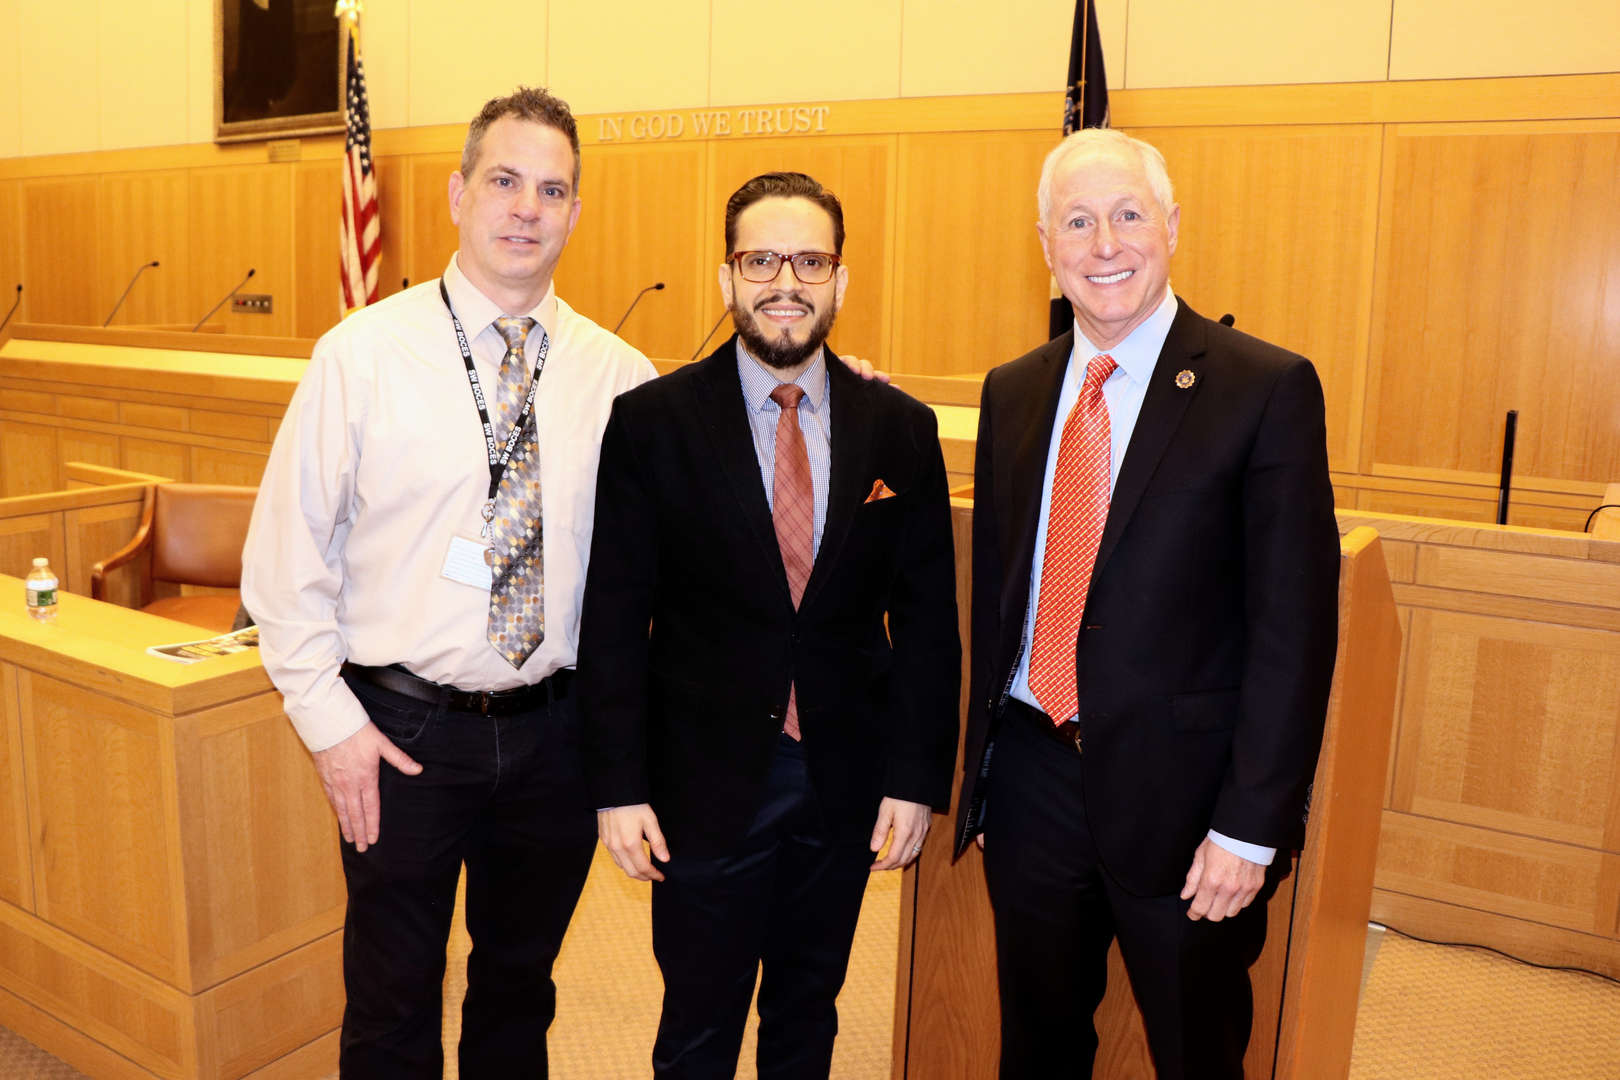 principal, safety supervisor and Assistant District Attorney